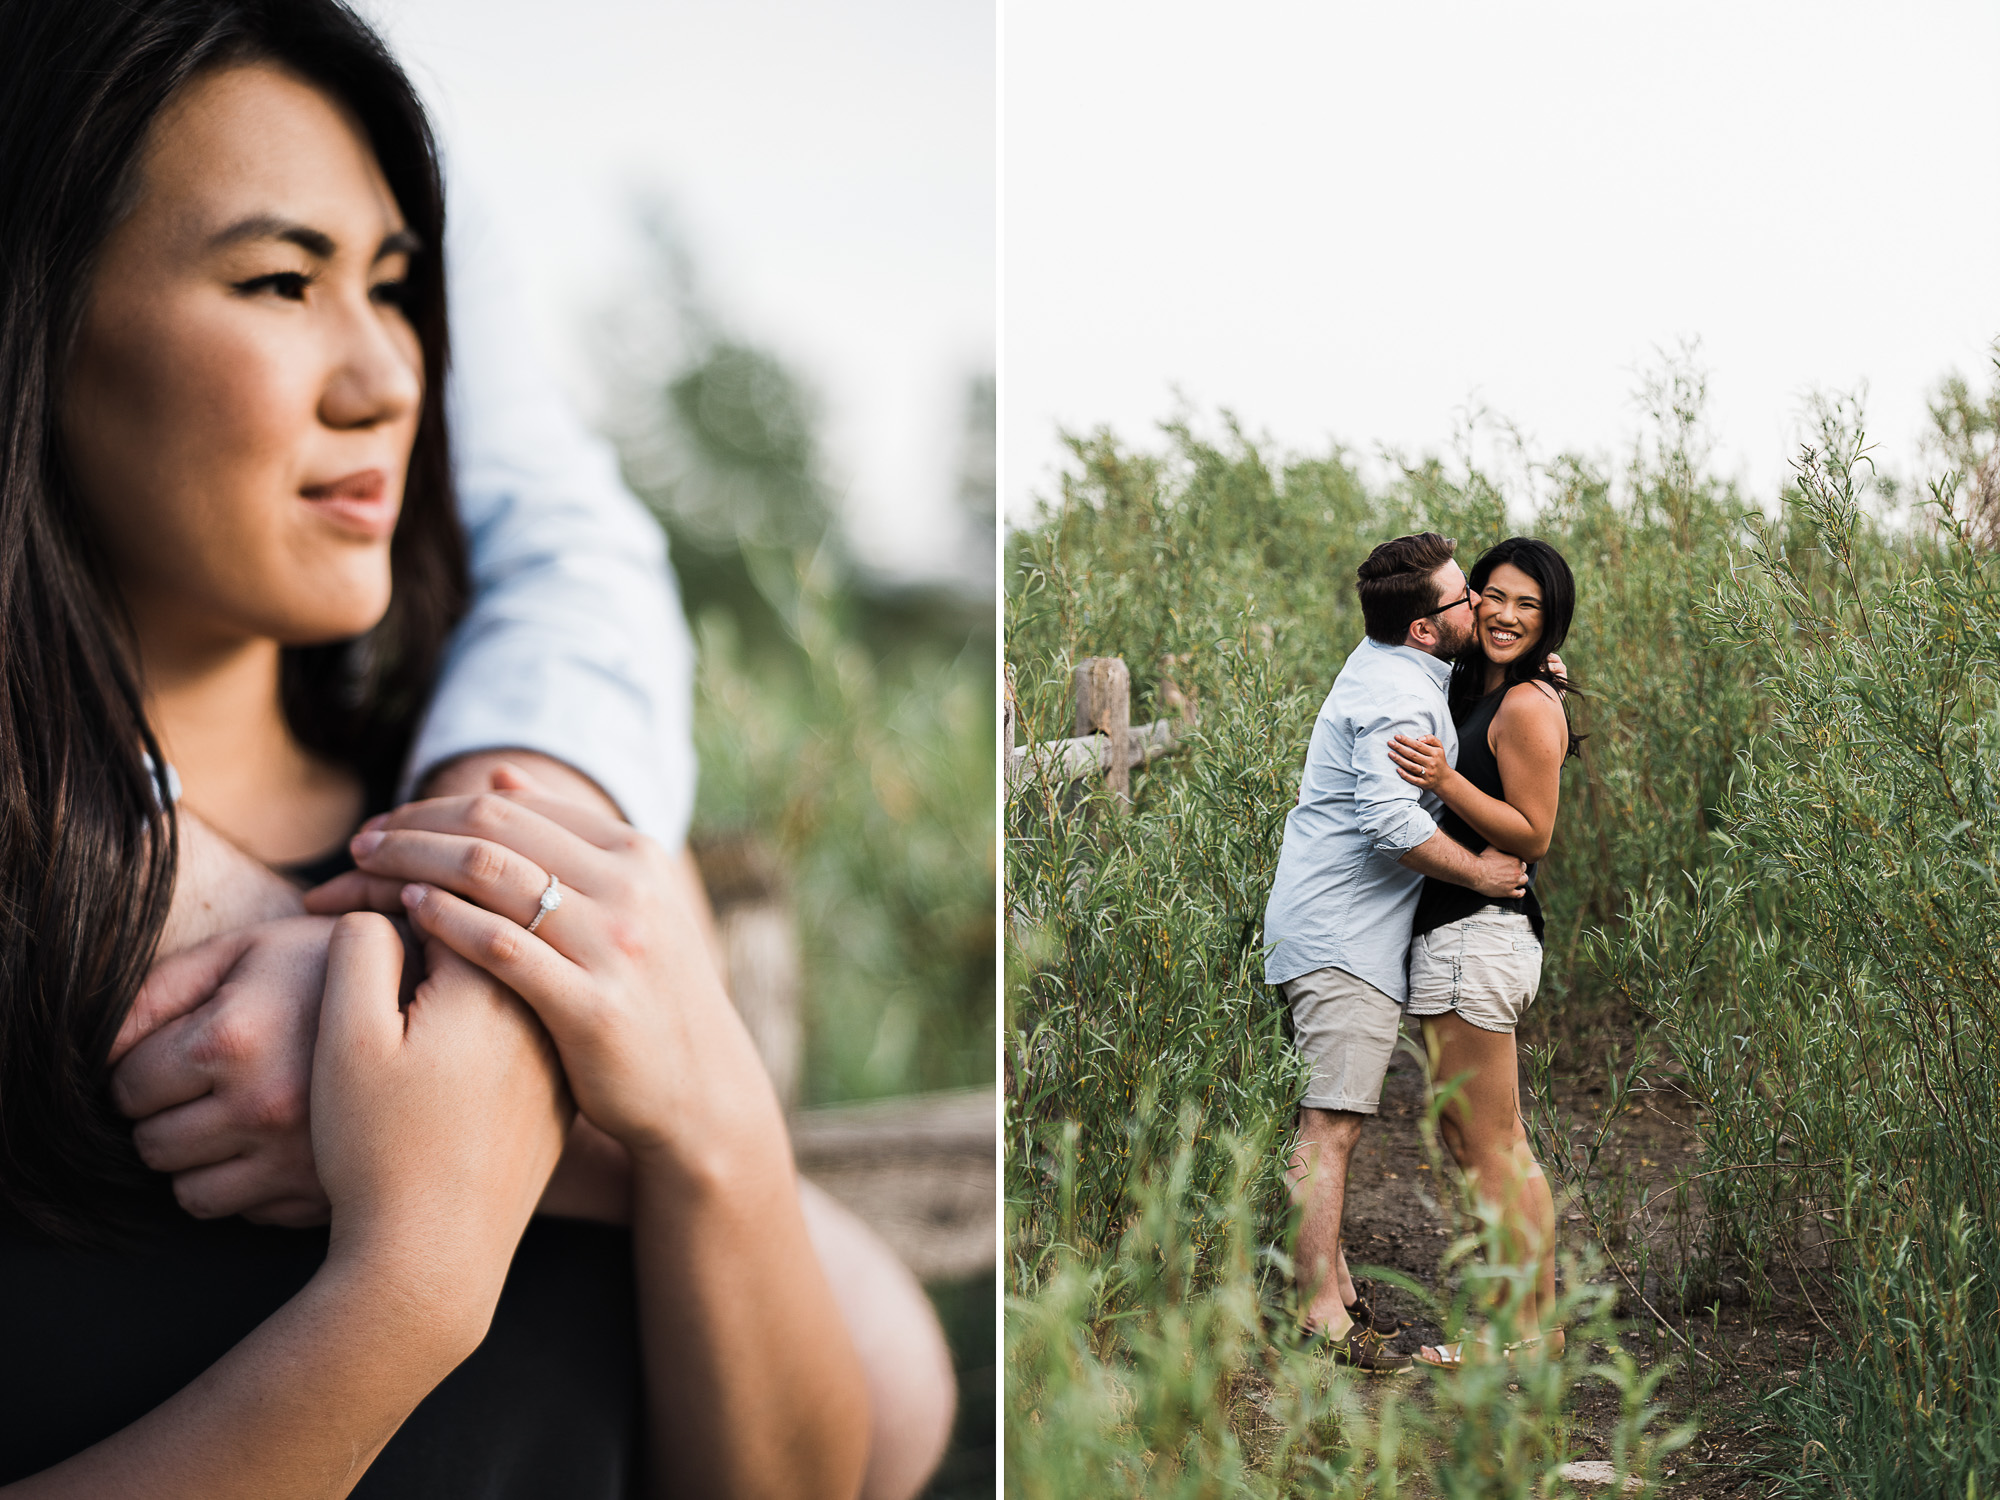 The Beaches Engagement Session